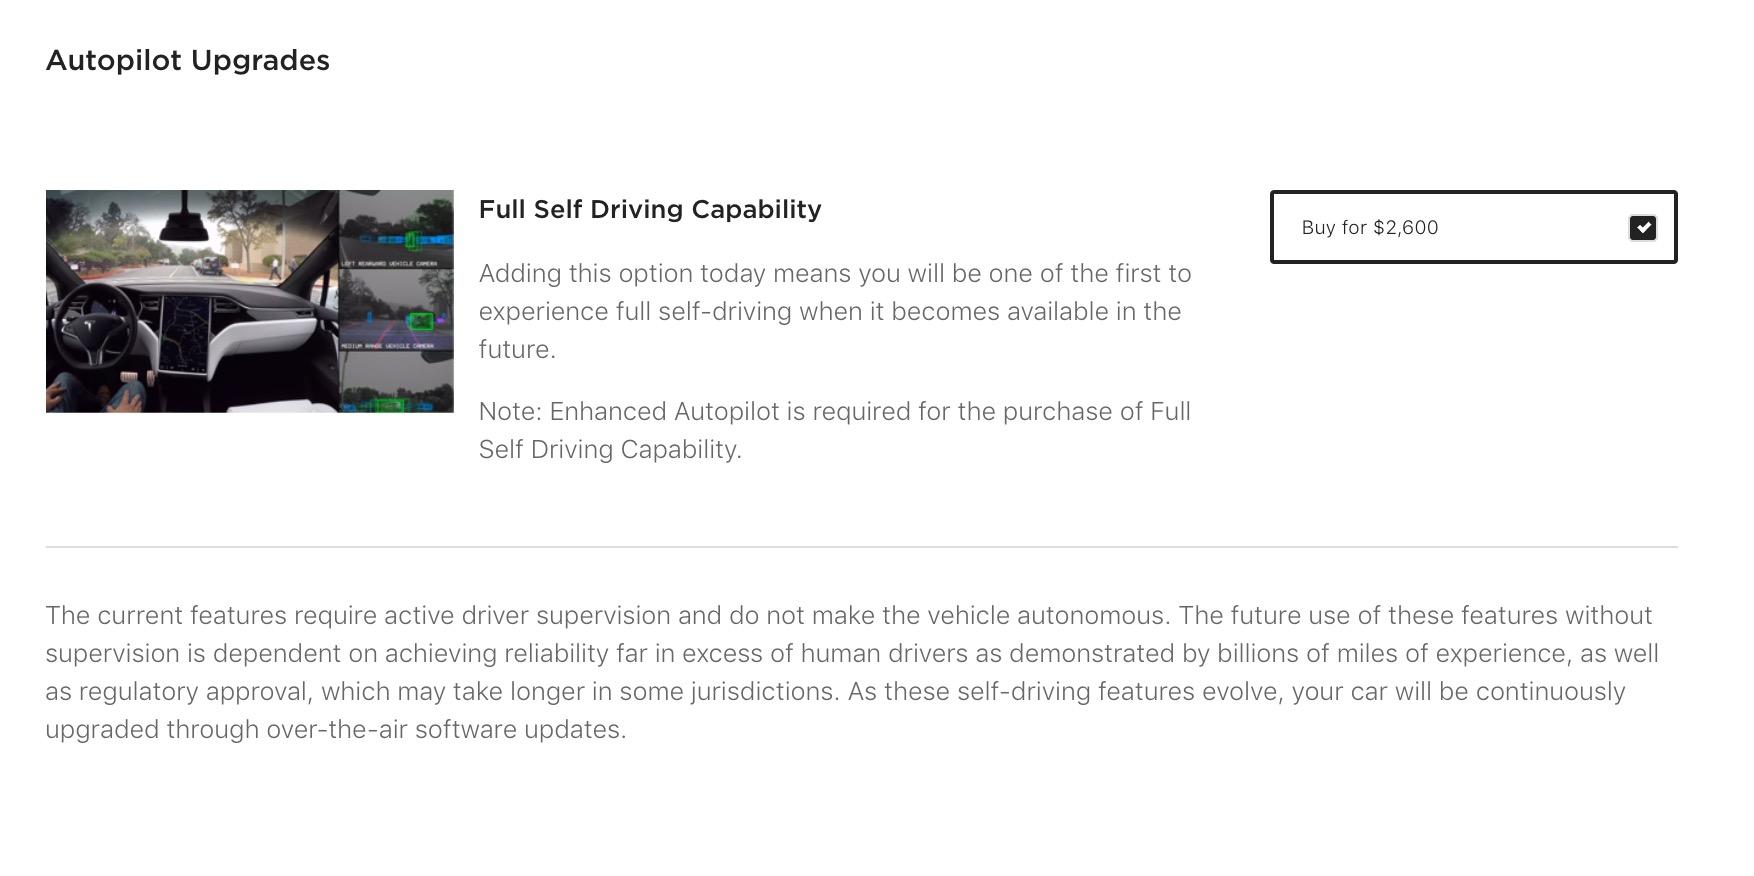 Tesla is bringing Autopilot prices 'back to normal', Elon Musk